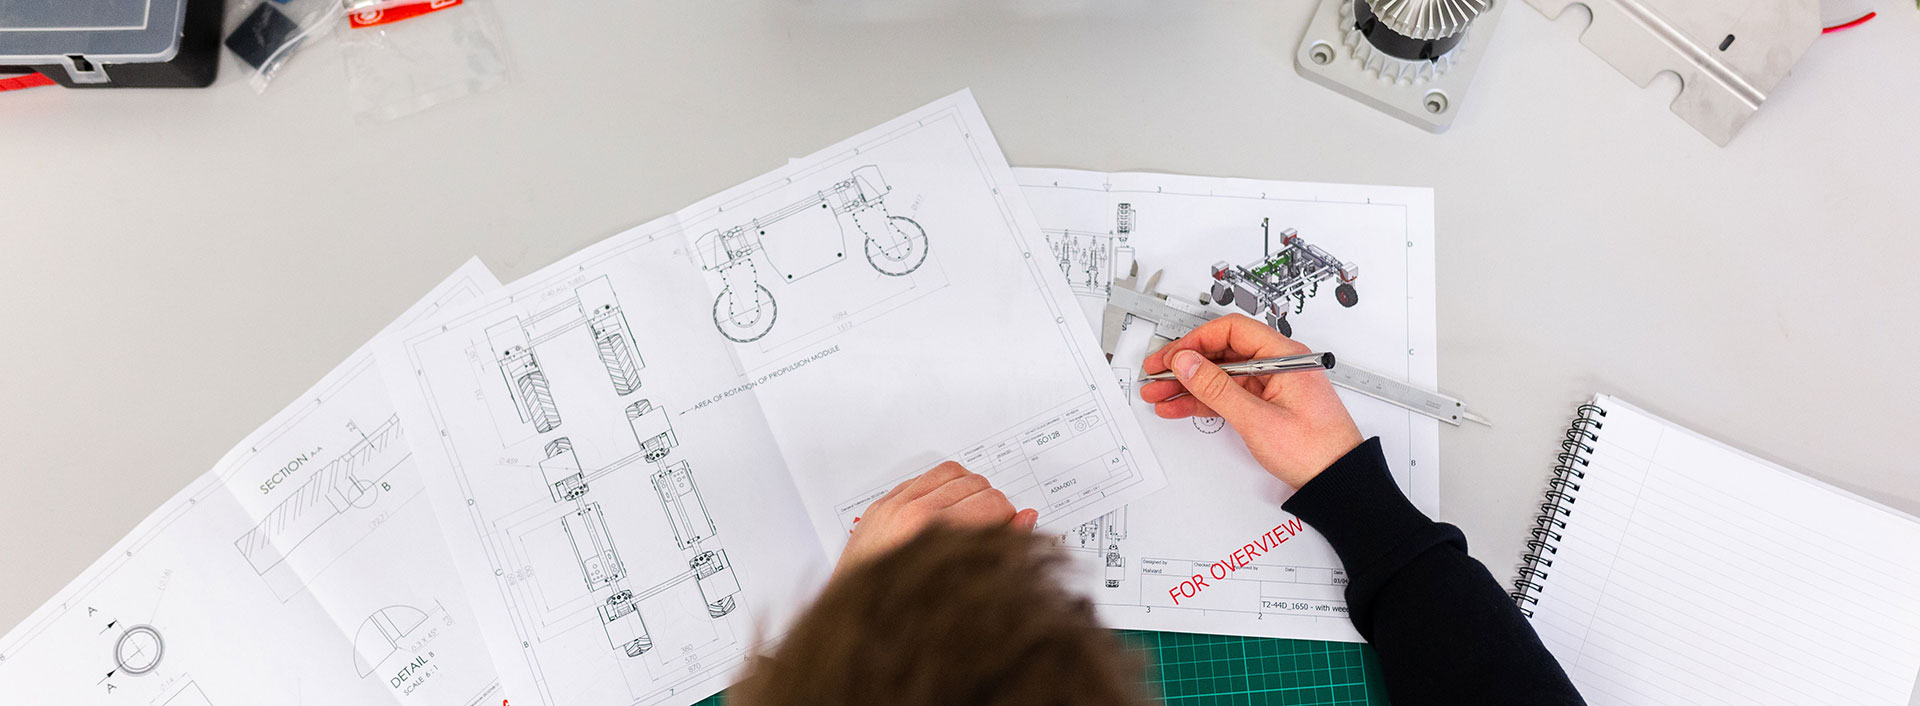 Overhead photo of an engineer reviewing industrial drawings